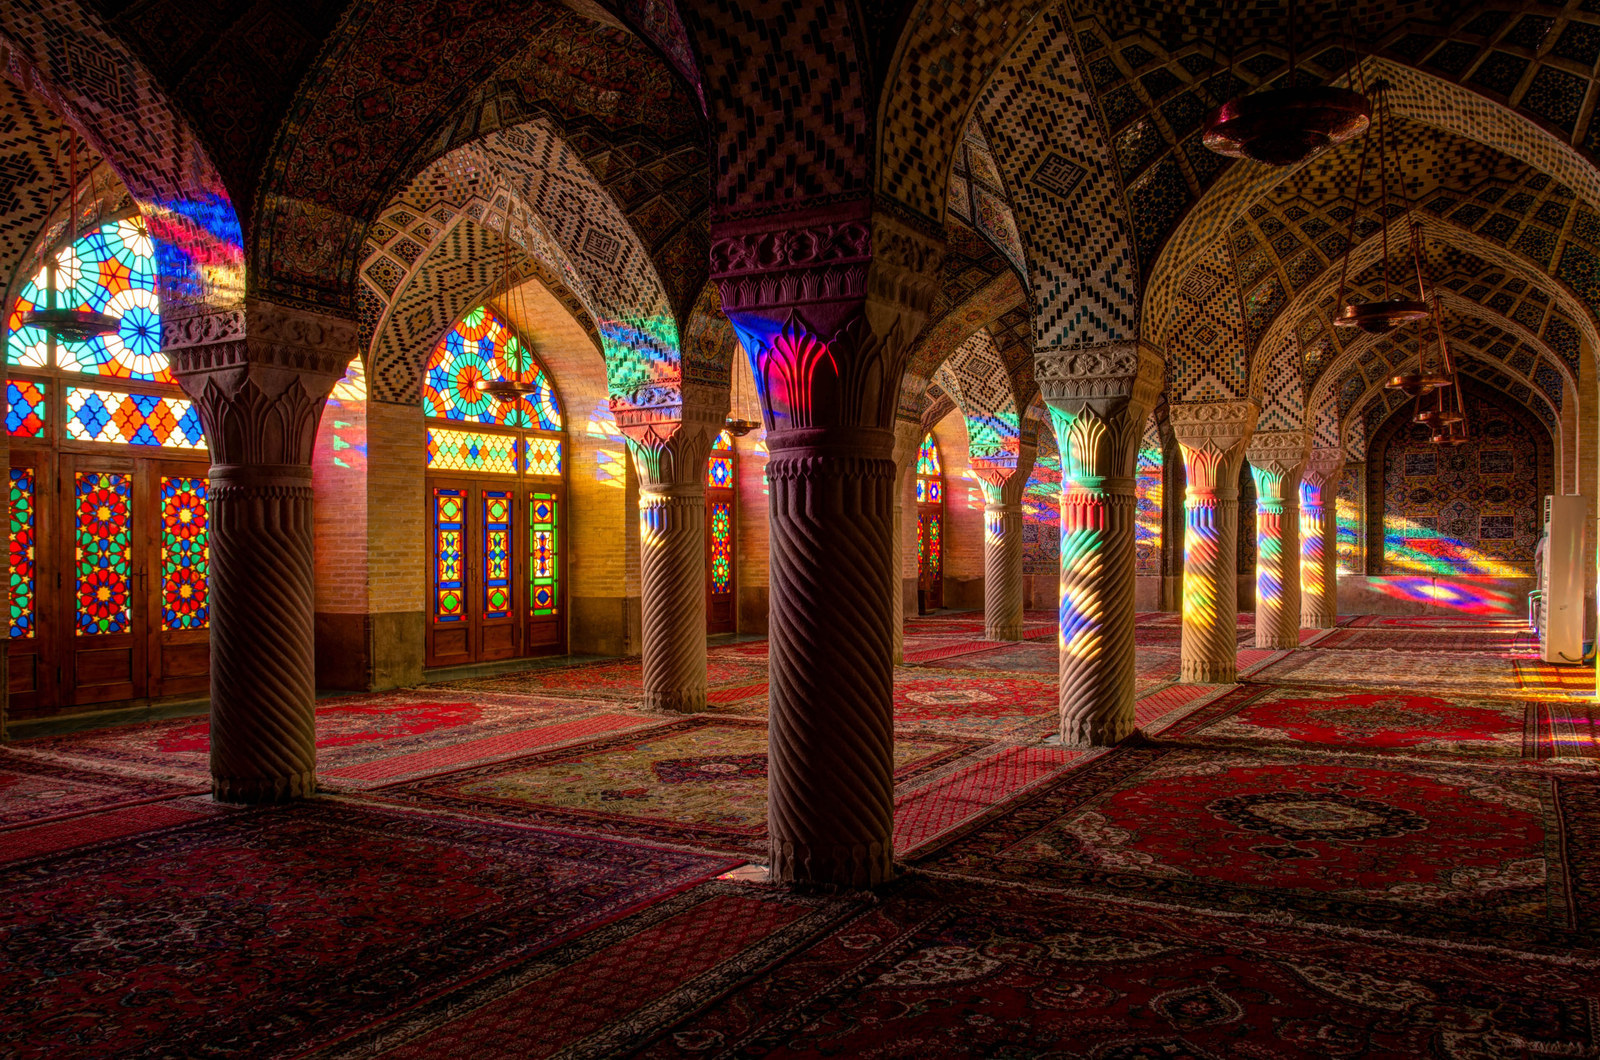 This Sunlit Mosque In Southern Iran Is A Kaleidoscope Of Colour